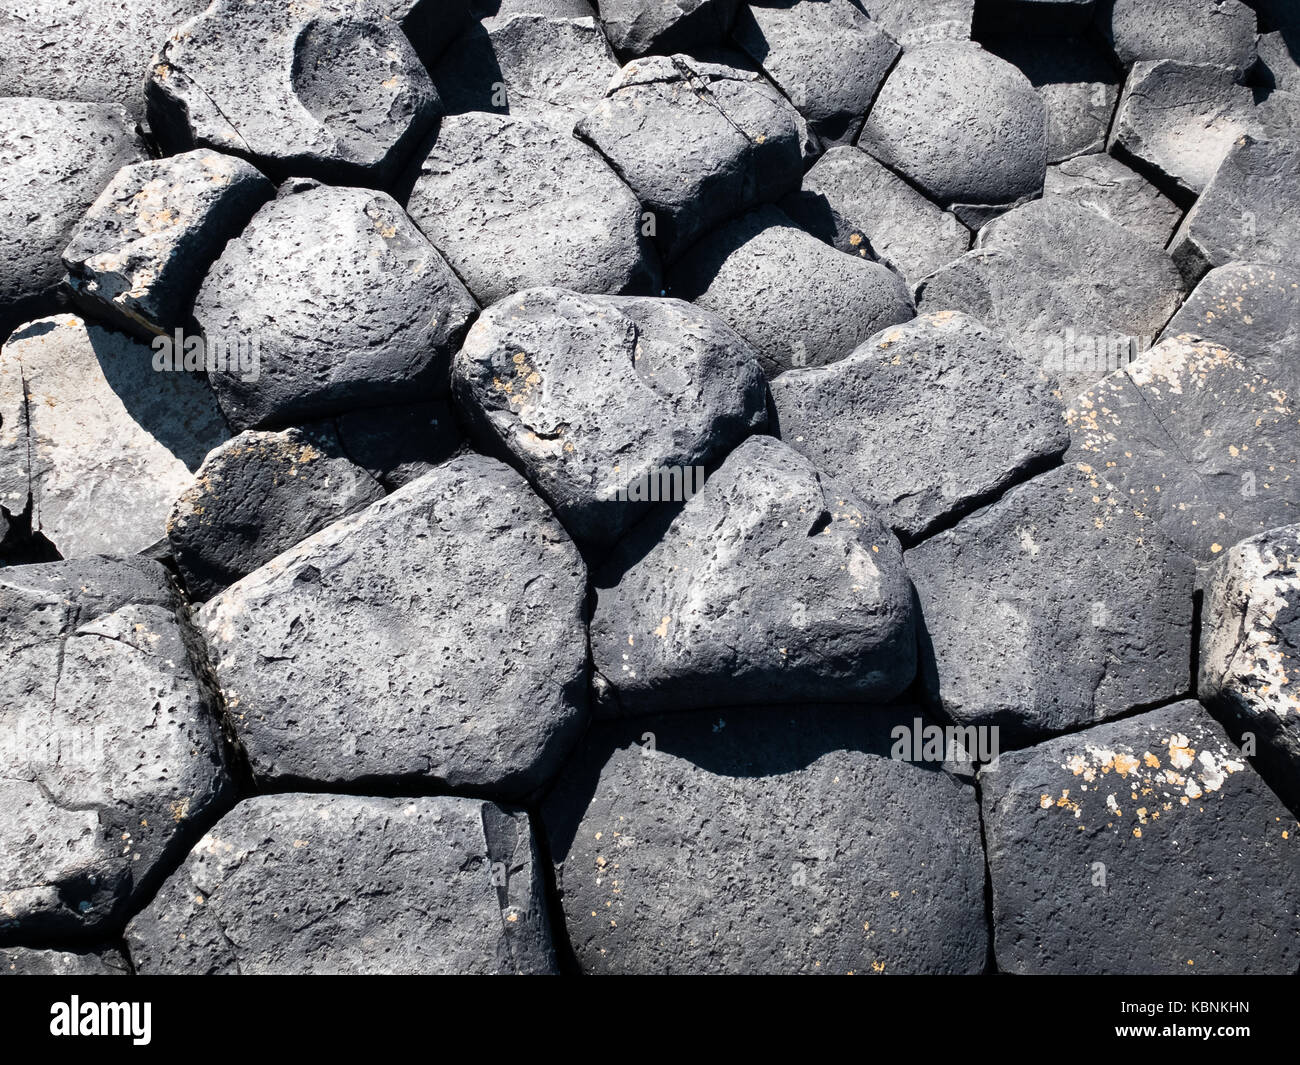 Giant's Causeway in Coutny Antrim, Northern Ireland - Stock Image